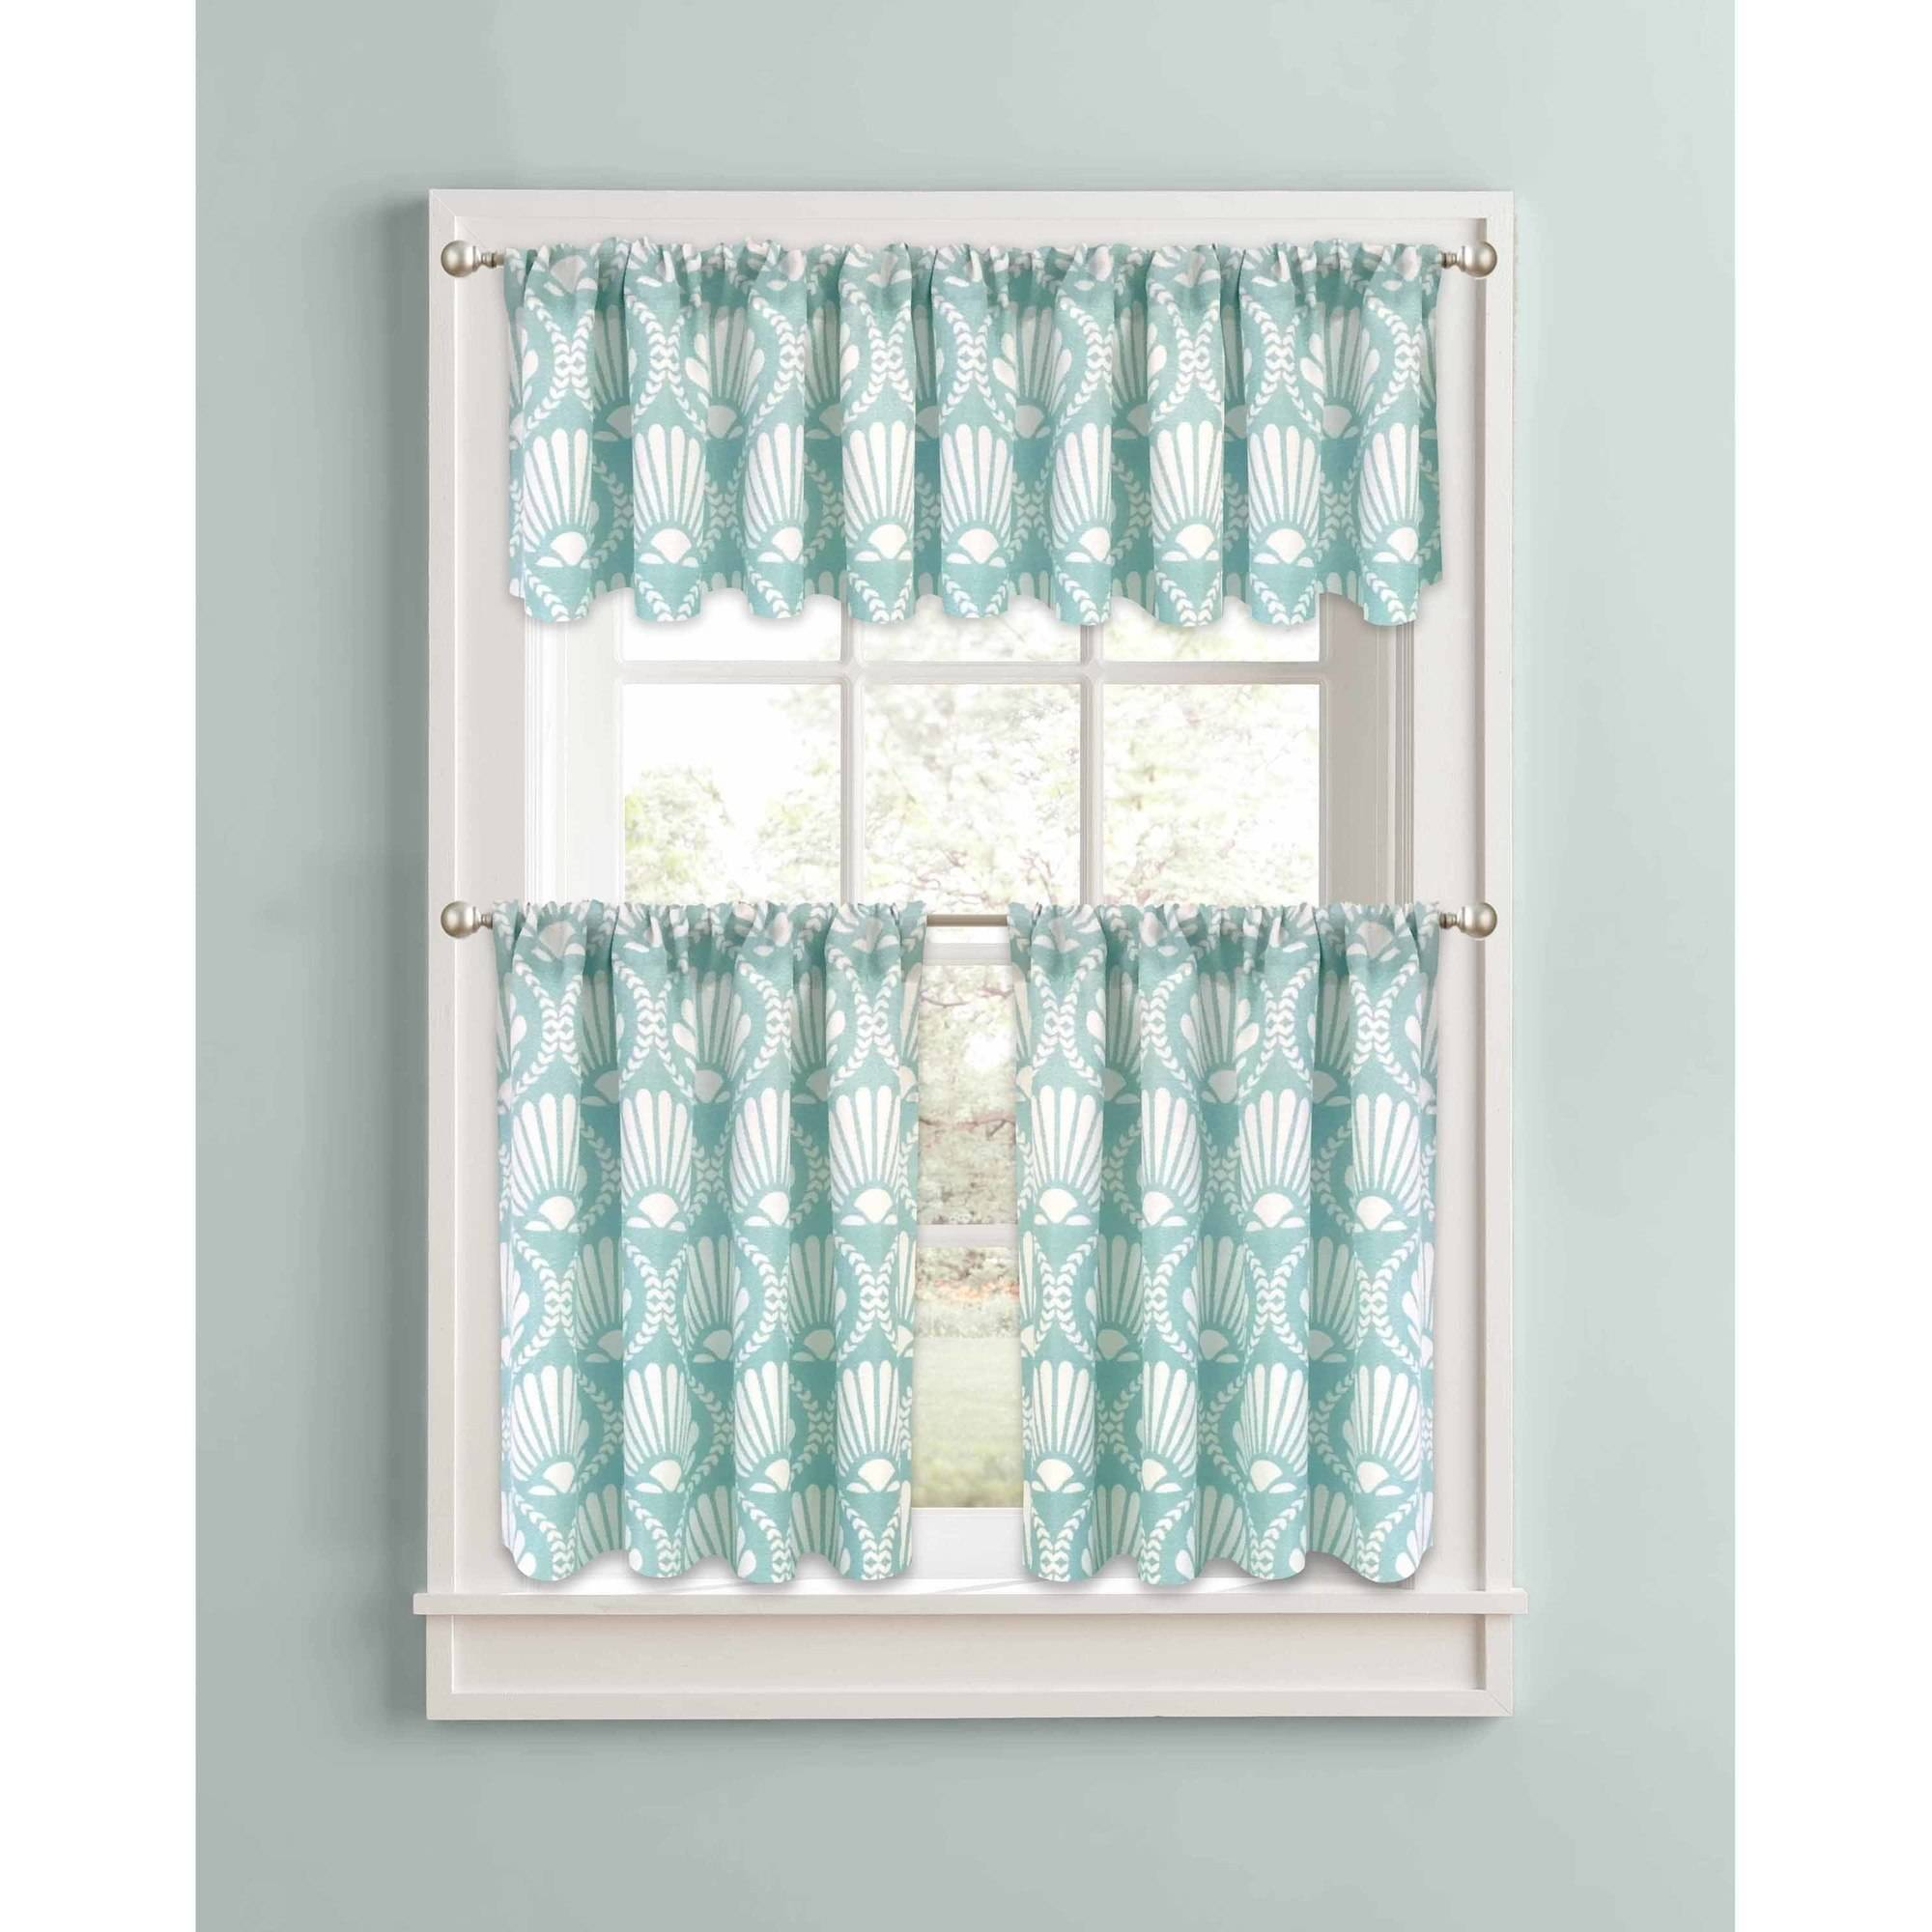 Better homes and gardens aqua venus shells kitchen Better homes and gardens curtains